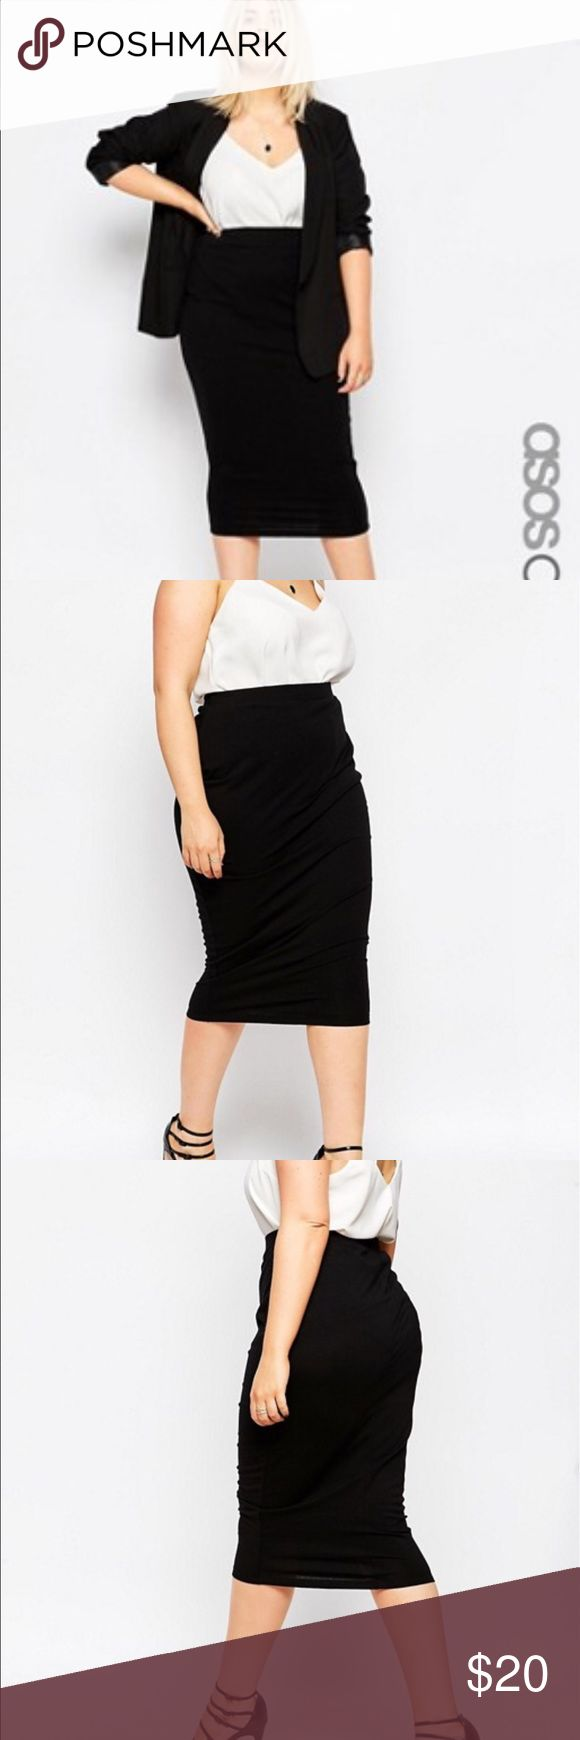 ASOS Black Jersey Pencil Skirt Only worn once EUC! Very soft, moves with your body, goes with everything, can easily be dressed up or down. This is a great staple piece for any wardrobe. ASOS Curve Skirts Pencil